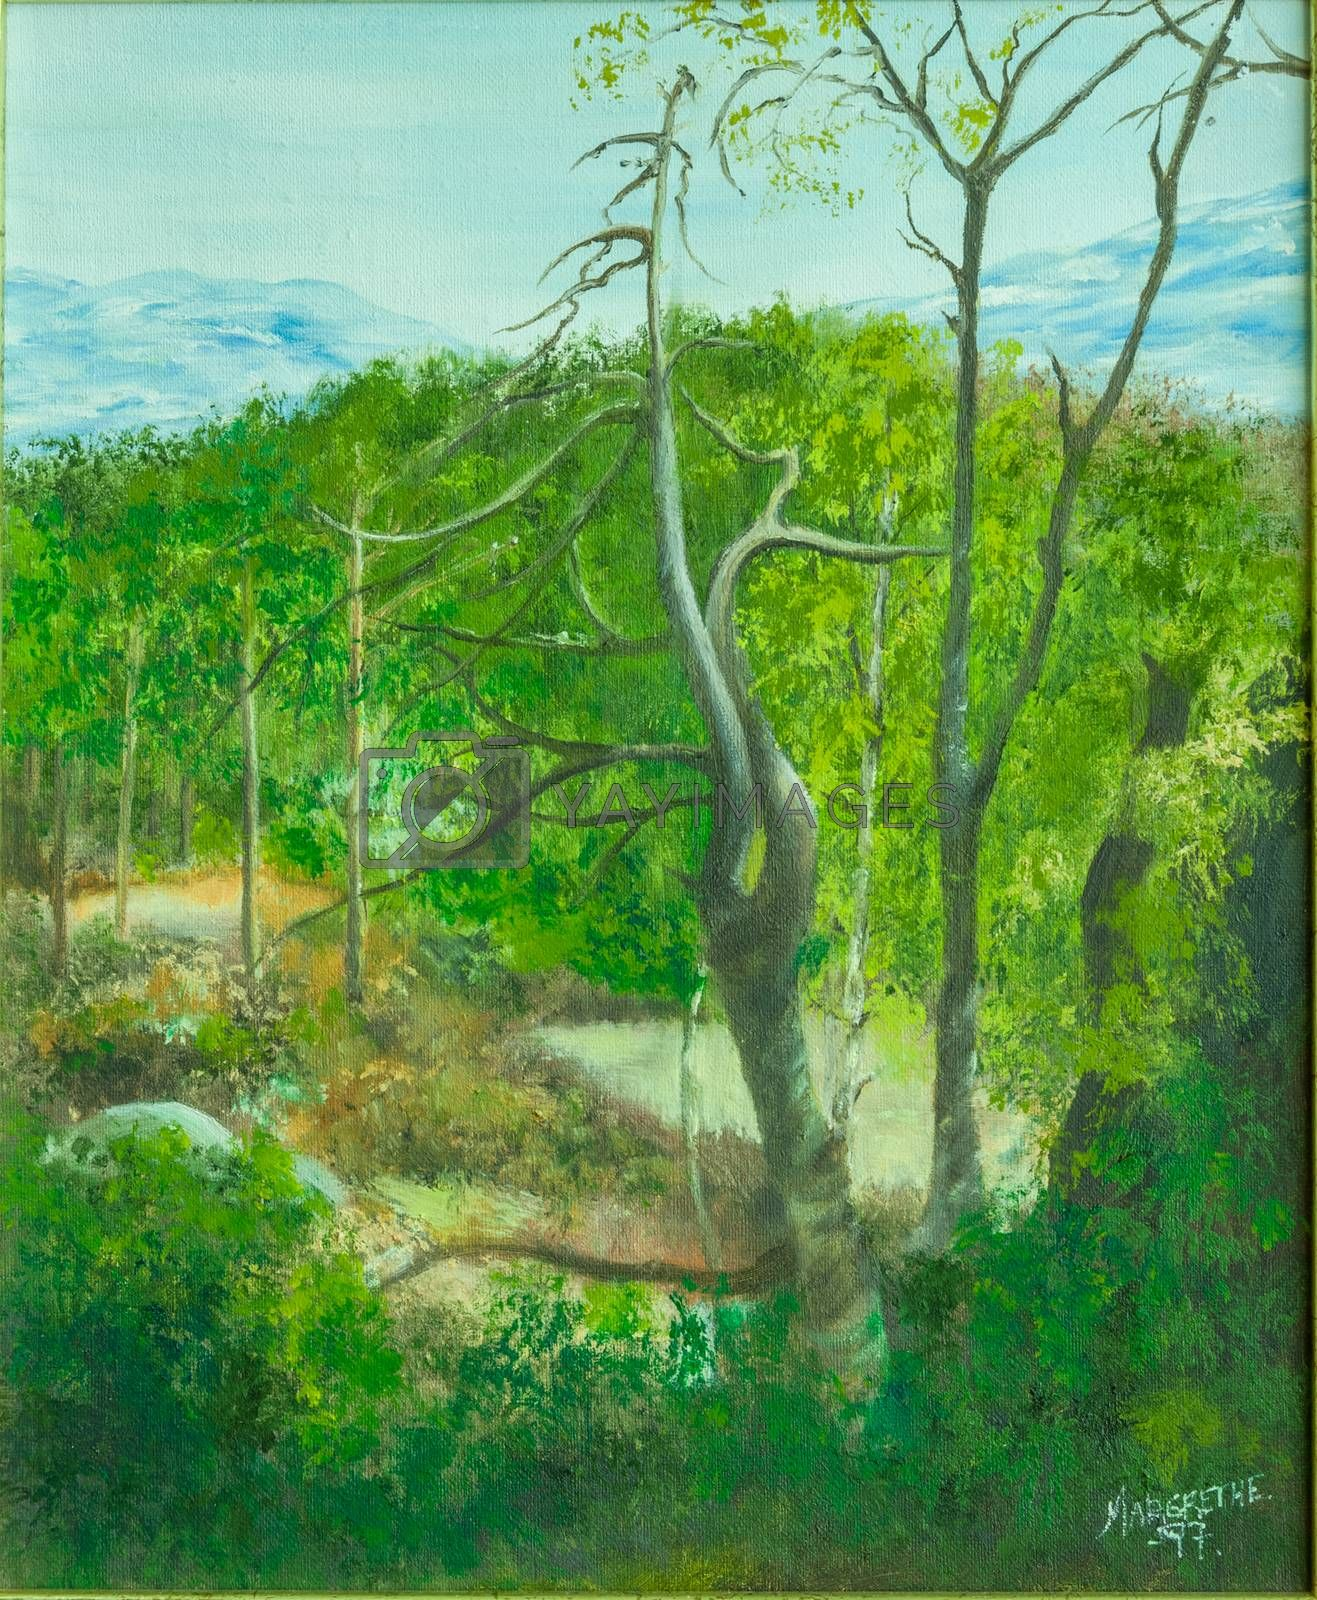 Art painting oil on canvas of summer landscape with old, dead tree in foreground and mountains with snow in background